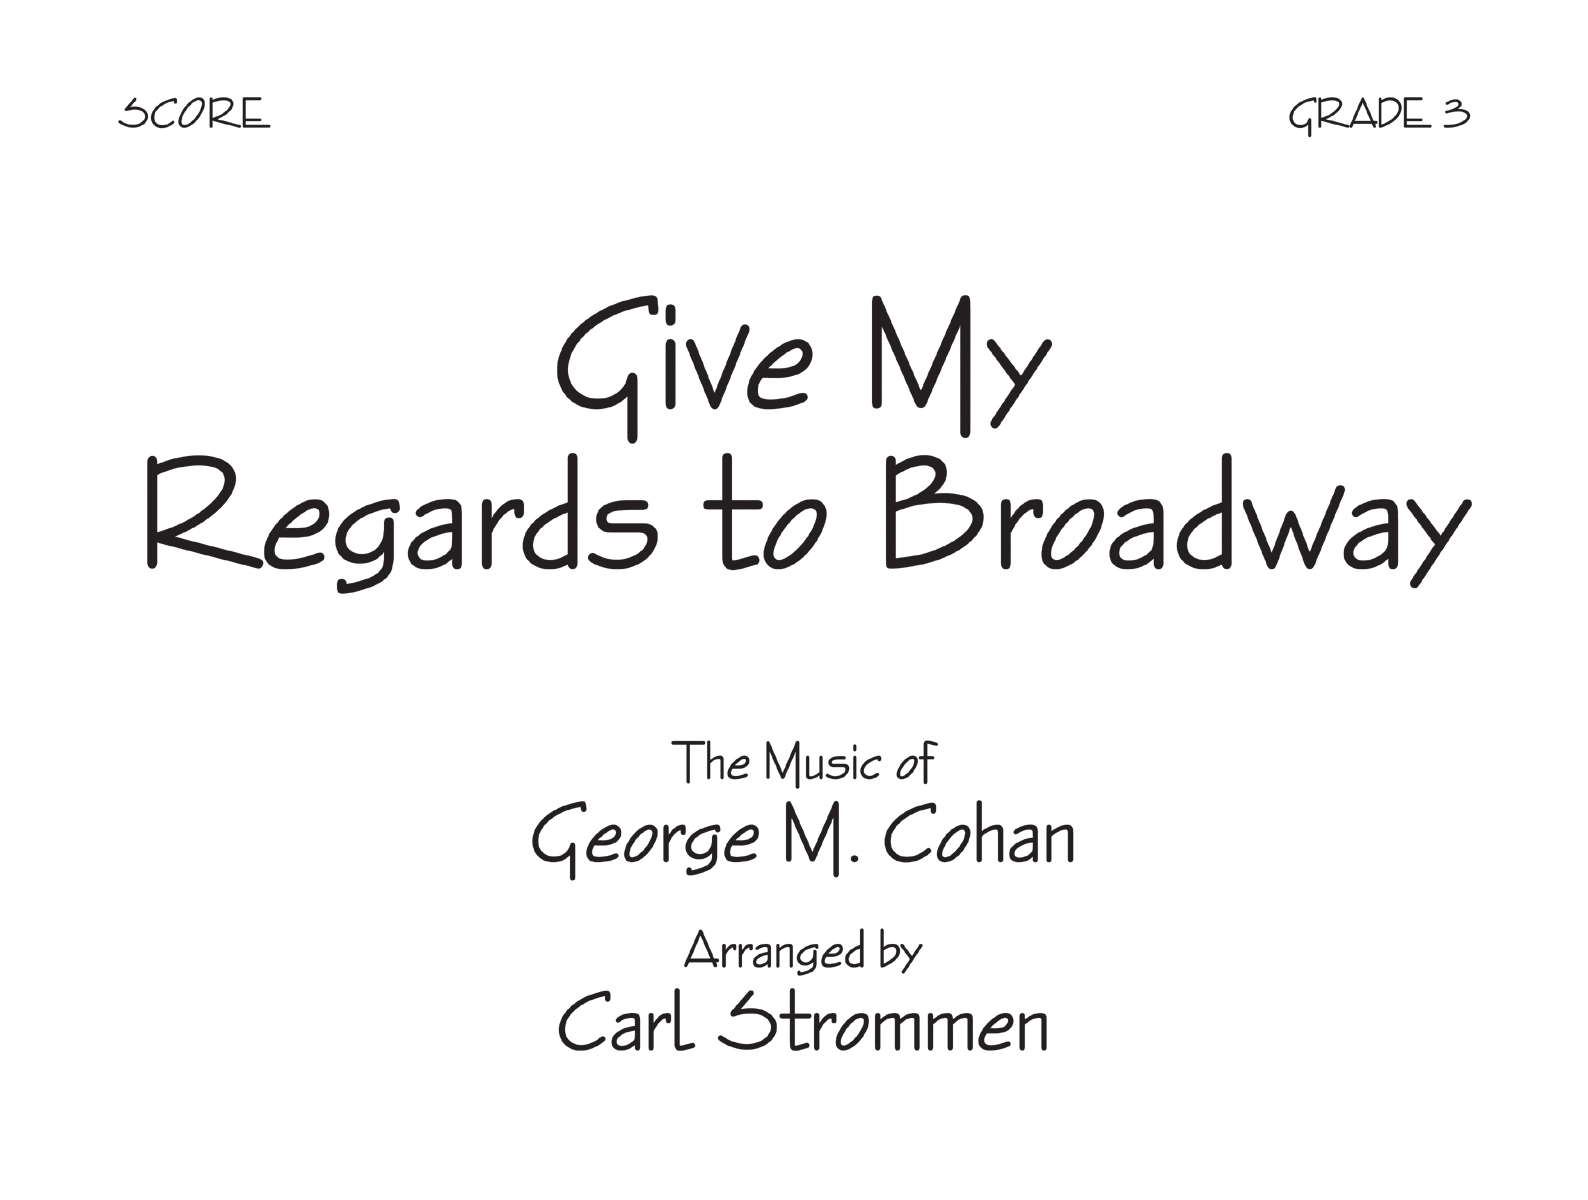 Give My Regards to Broadway - Score